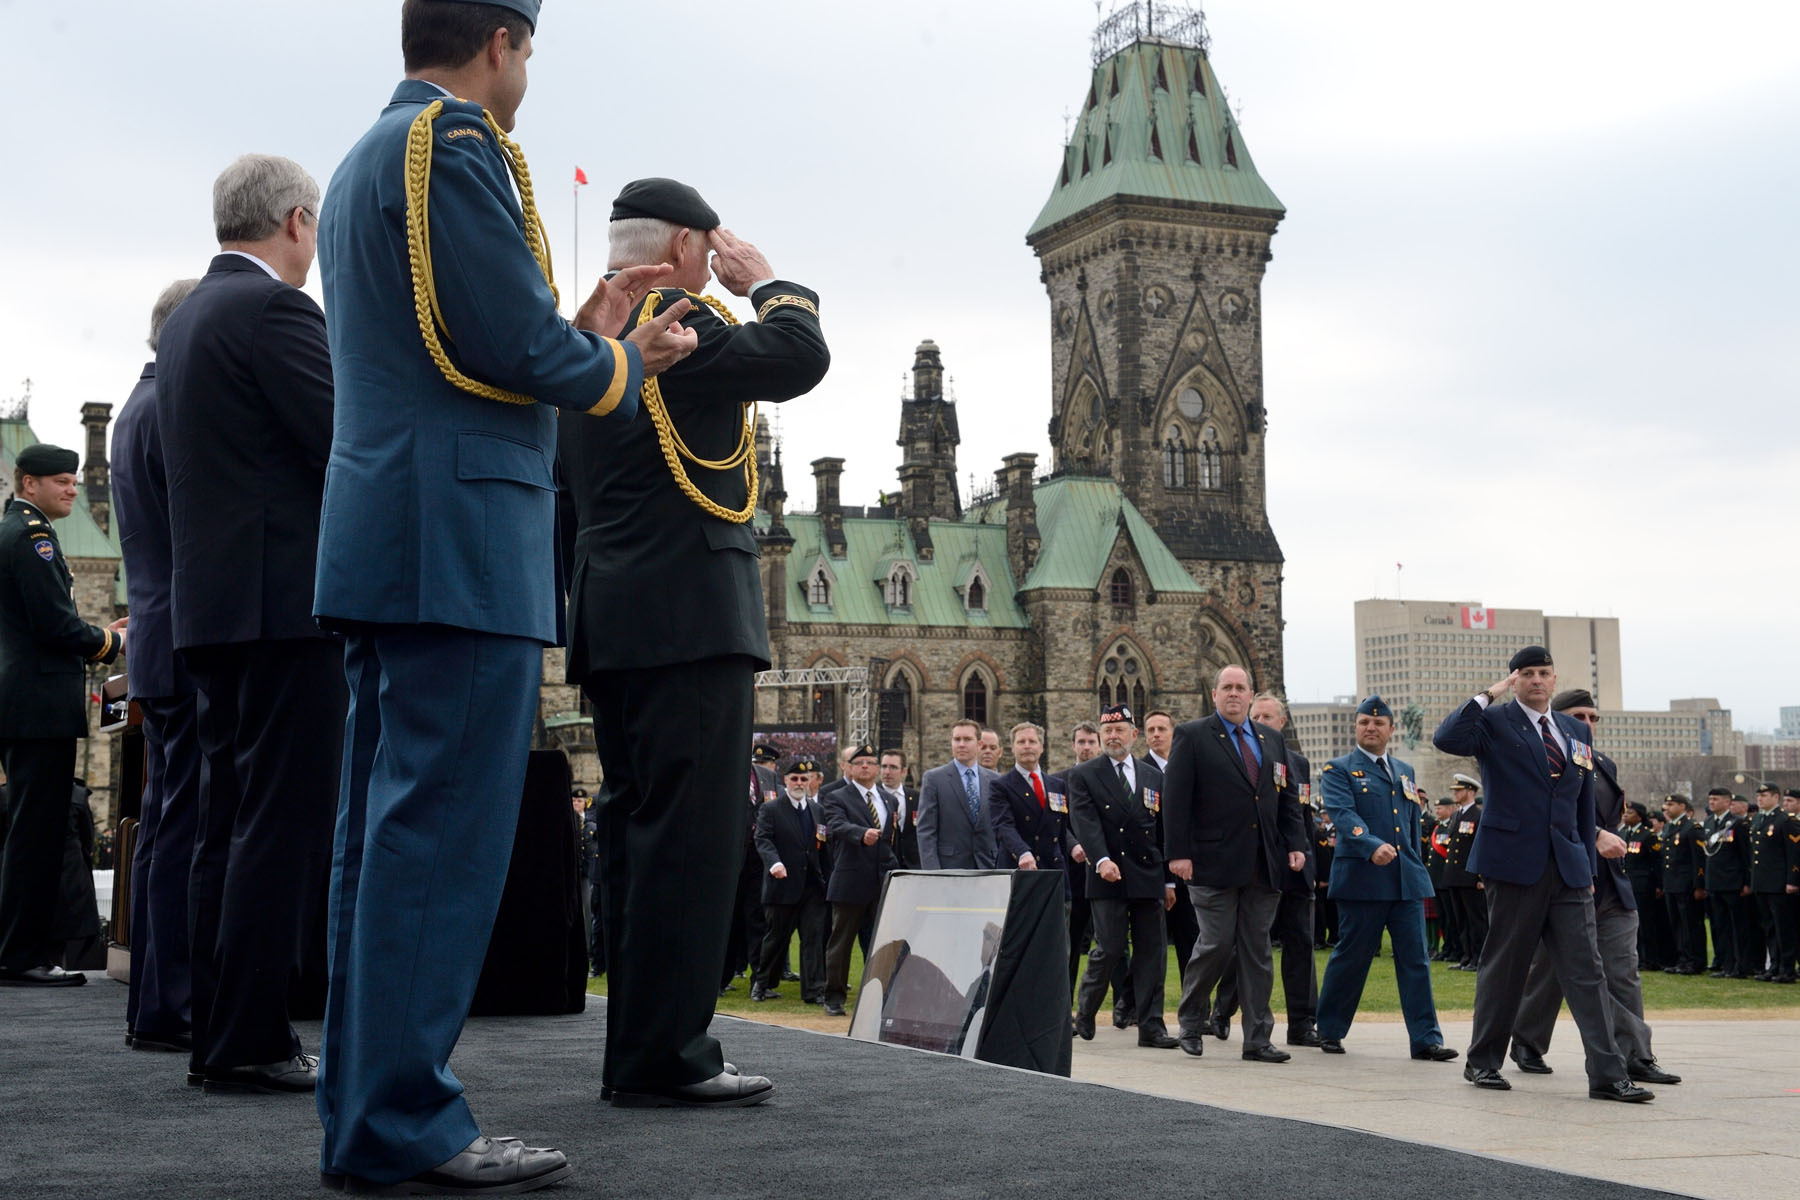 The National Day of Honour commemorated the service and sacrifice of members of the Canadian Armed Forces and employees of the public service of Canada who served in Afghanistan.